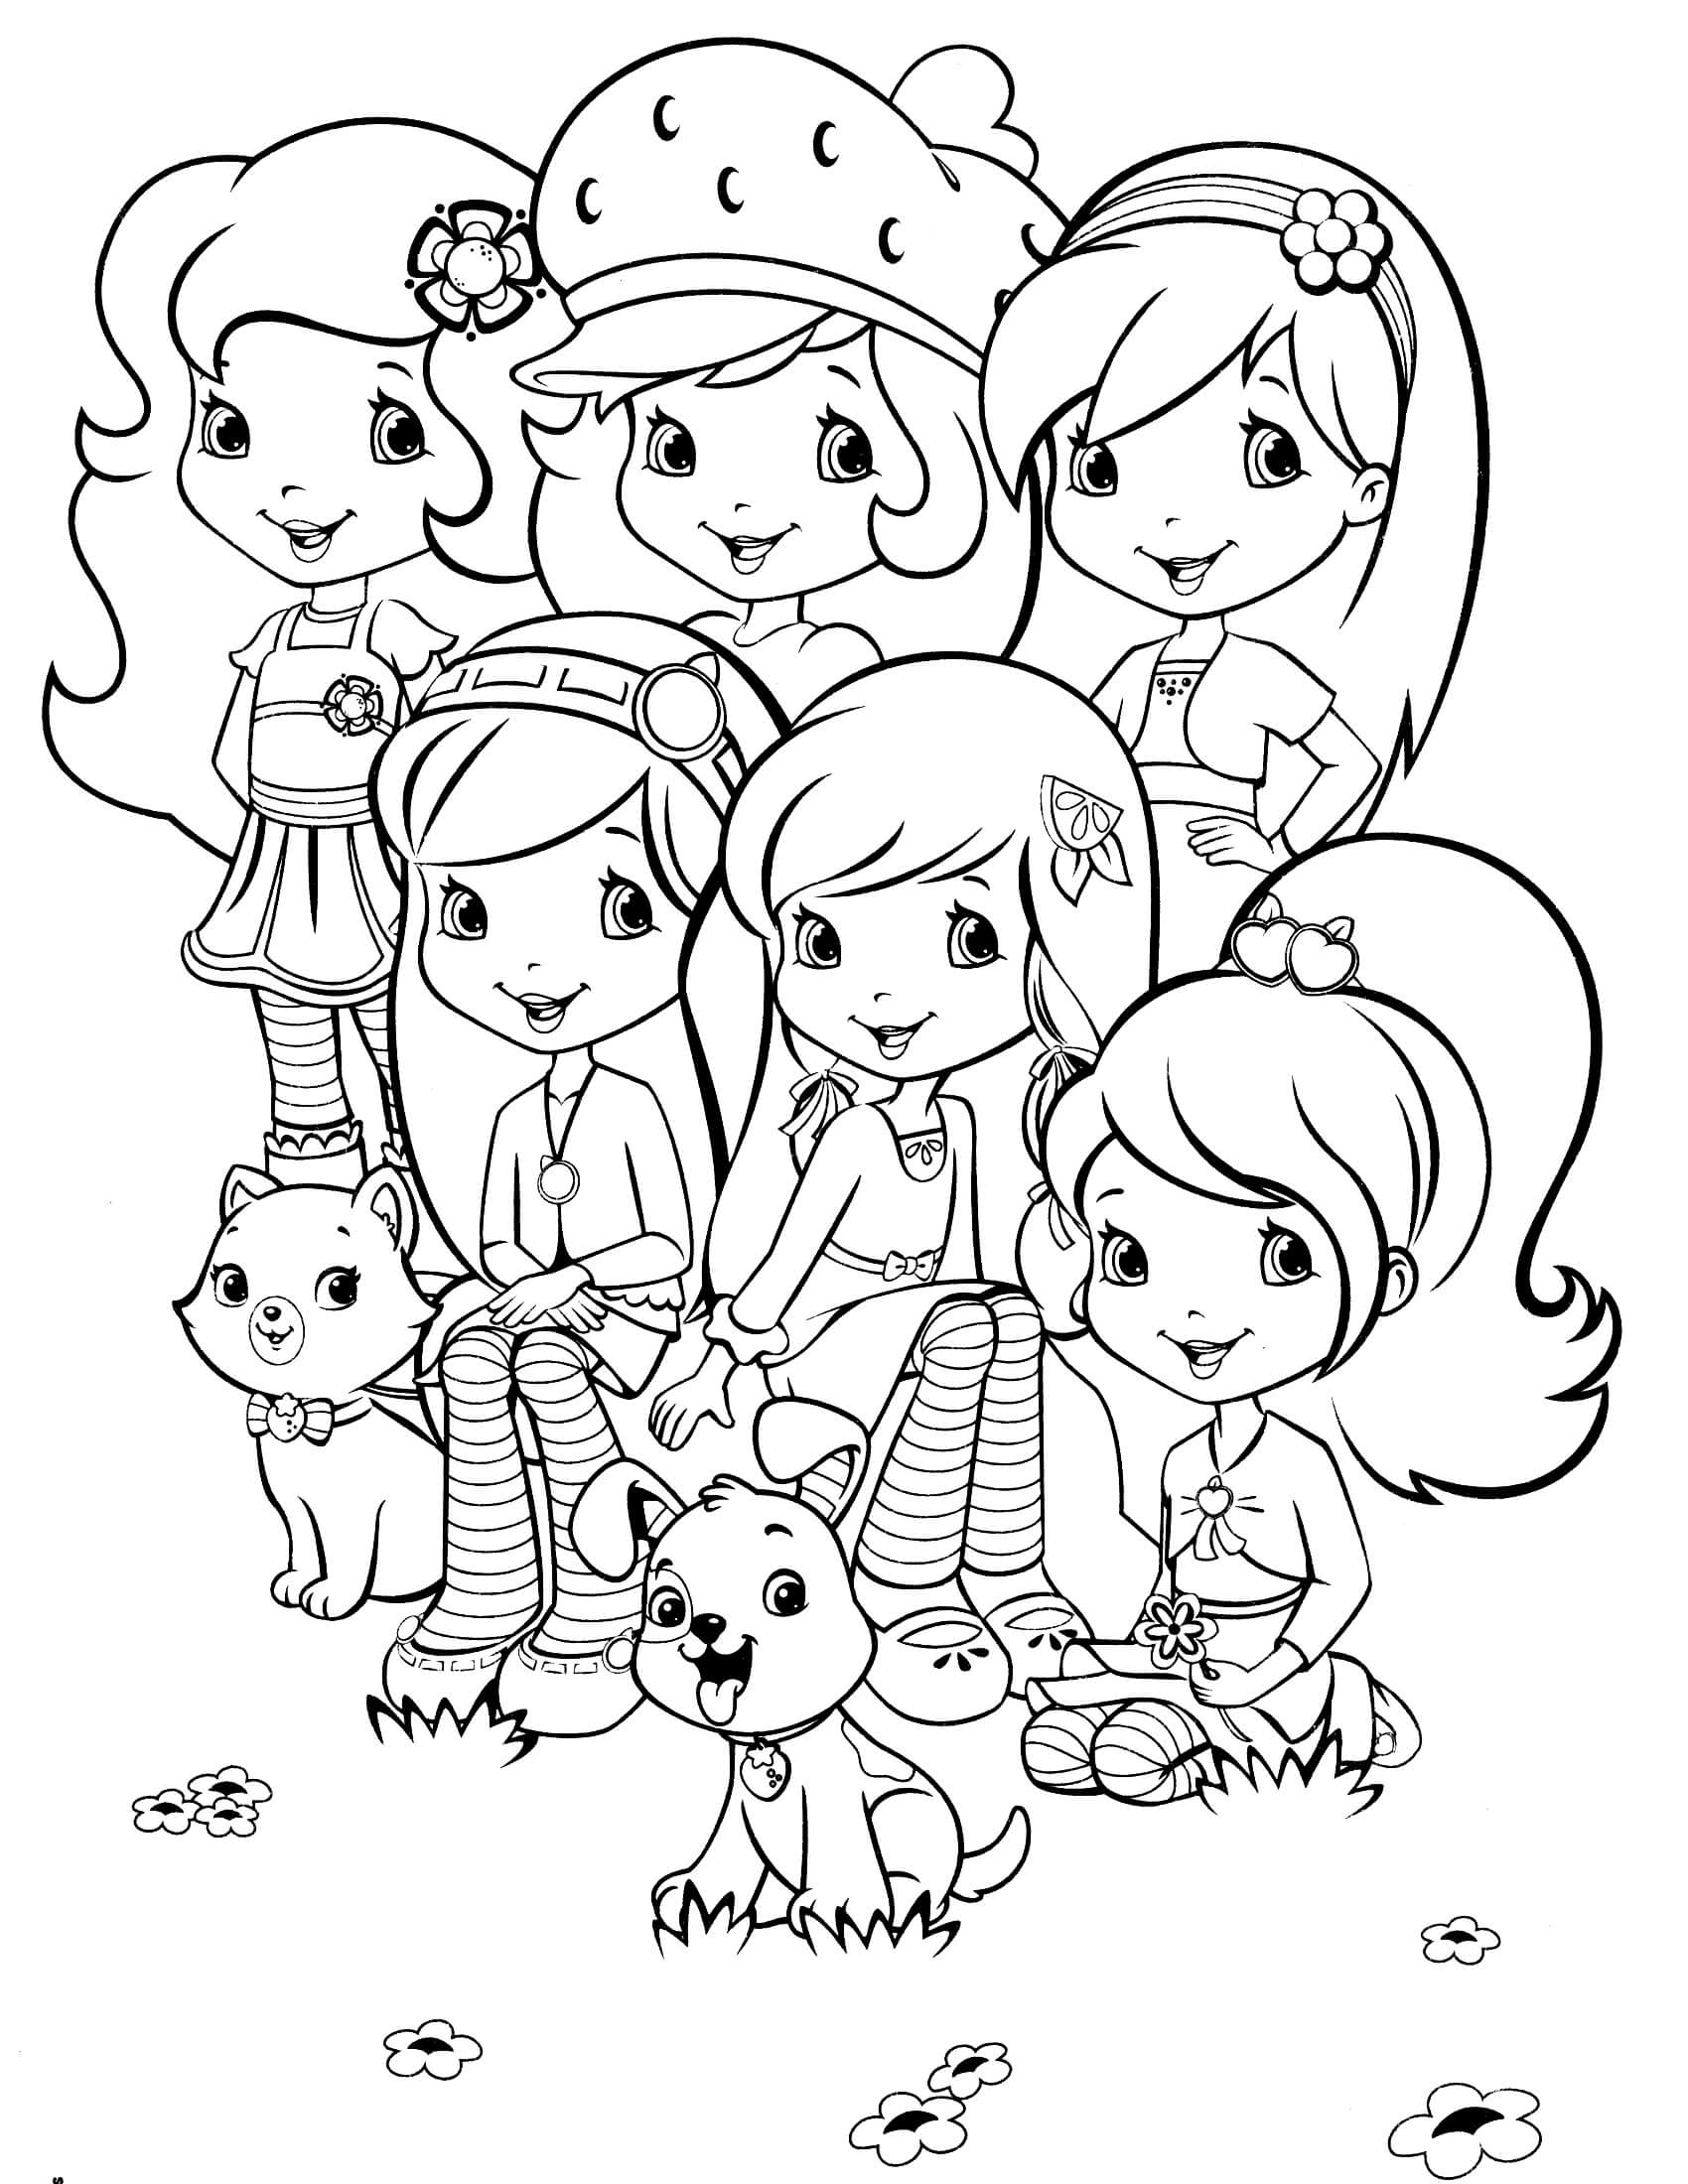 strawberry shortcake drawing pages get this cute strawberry shortcake coloring pages to print pages shortcake drawing strawberry